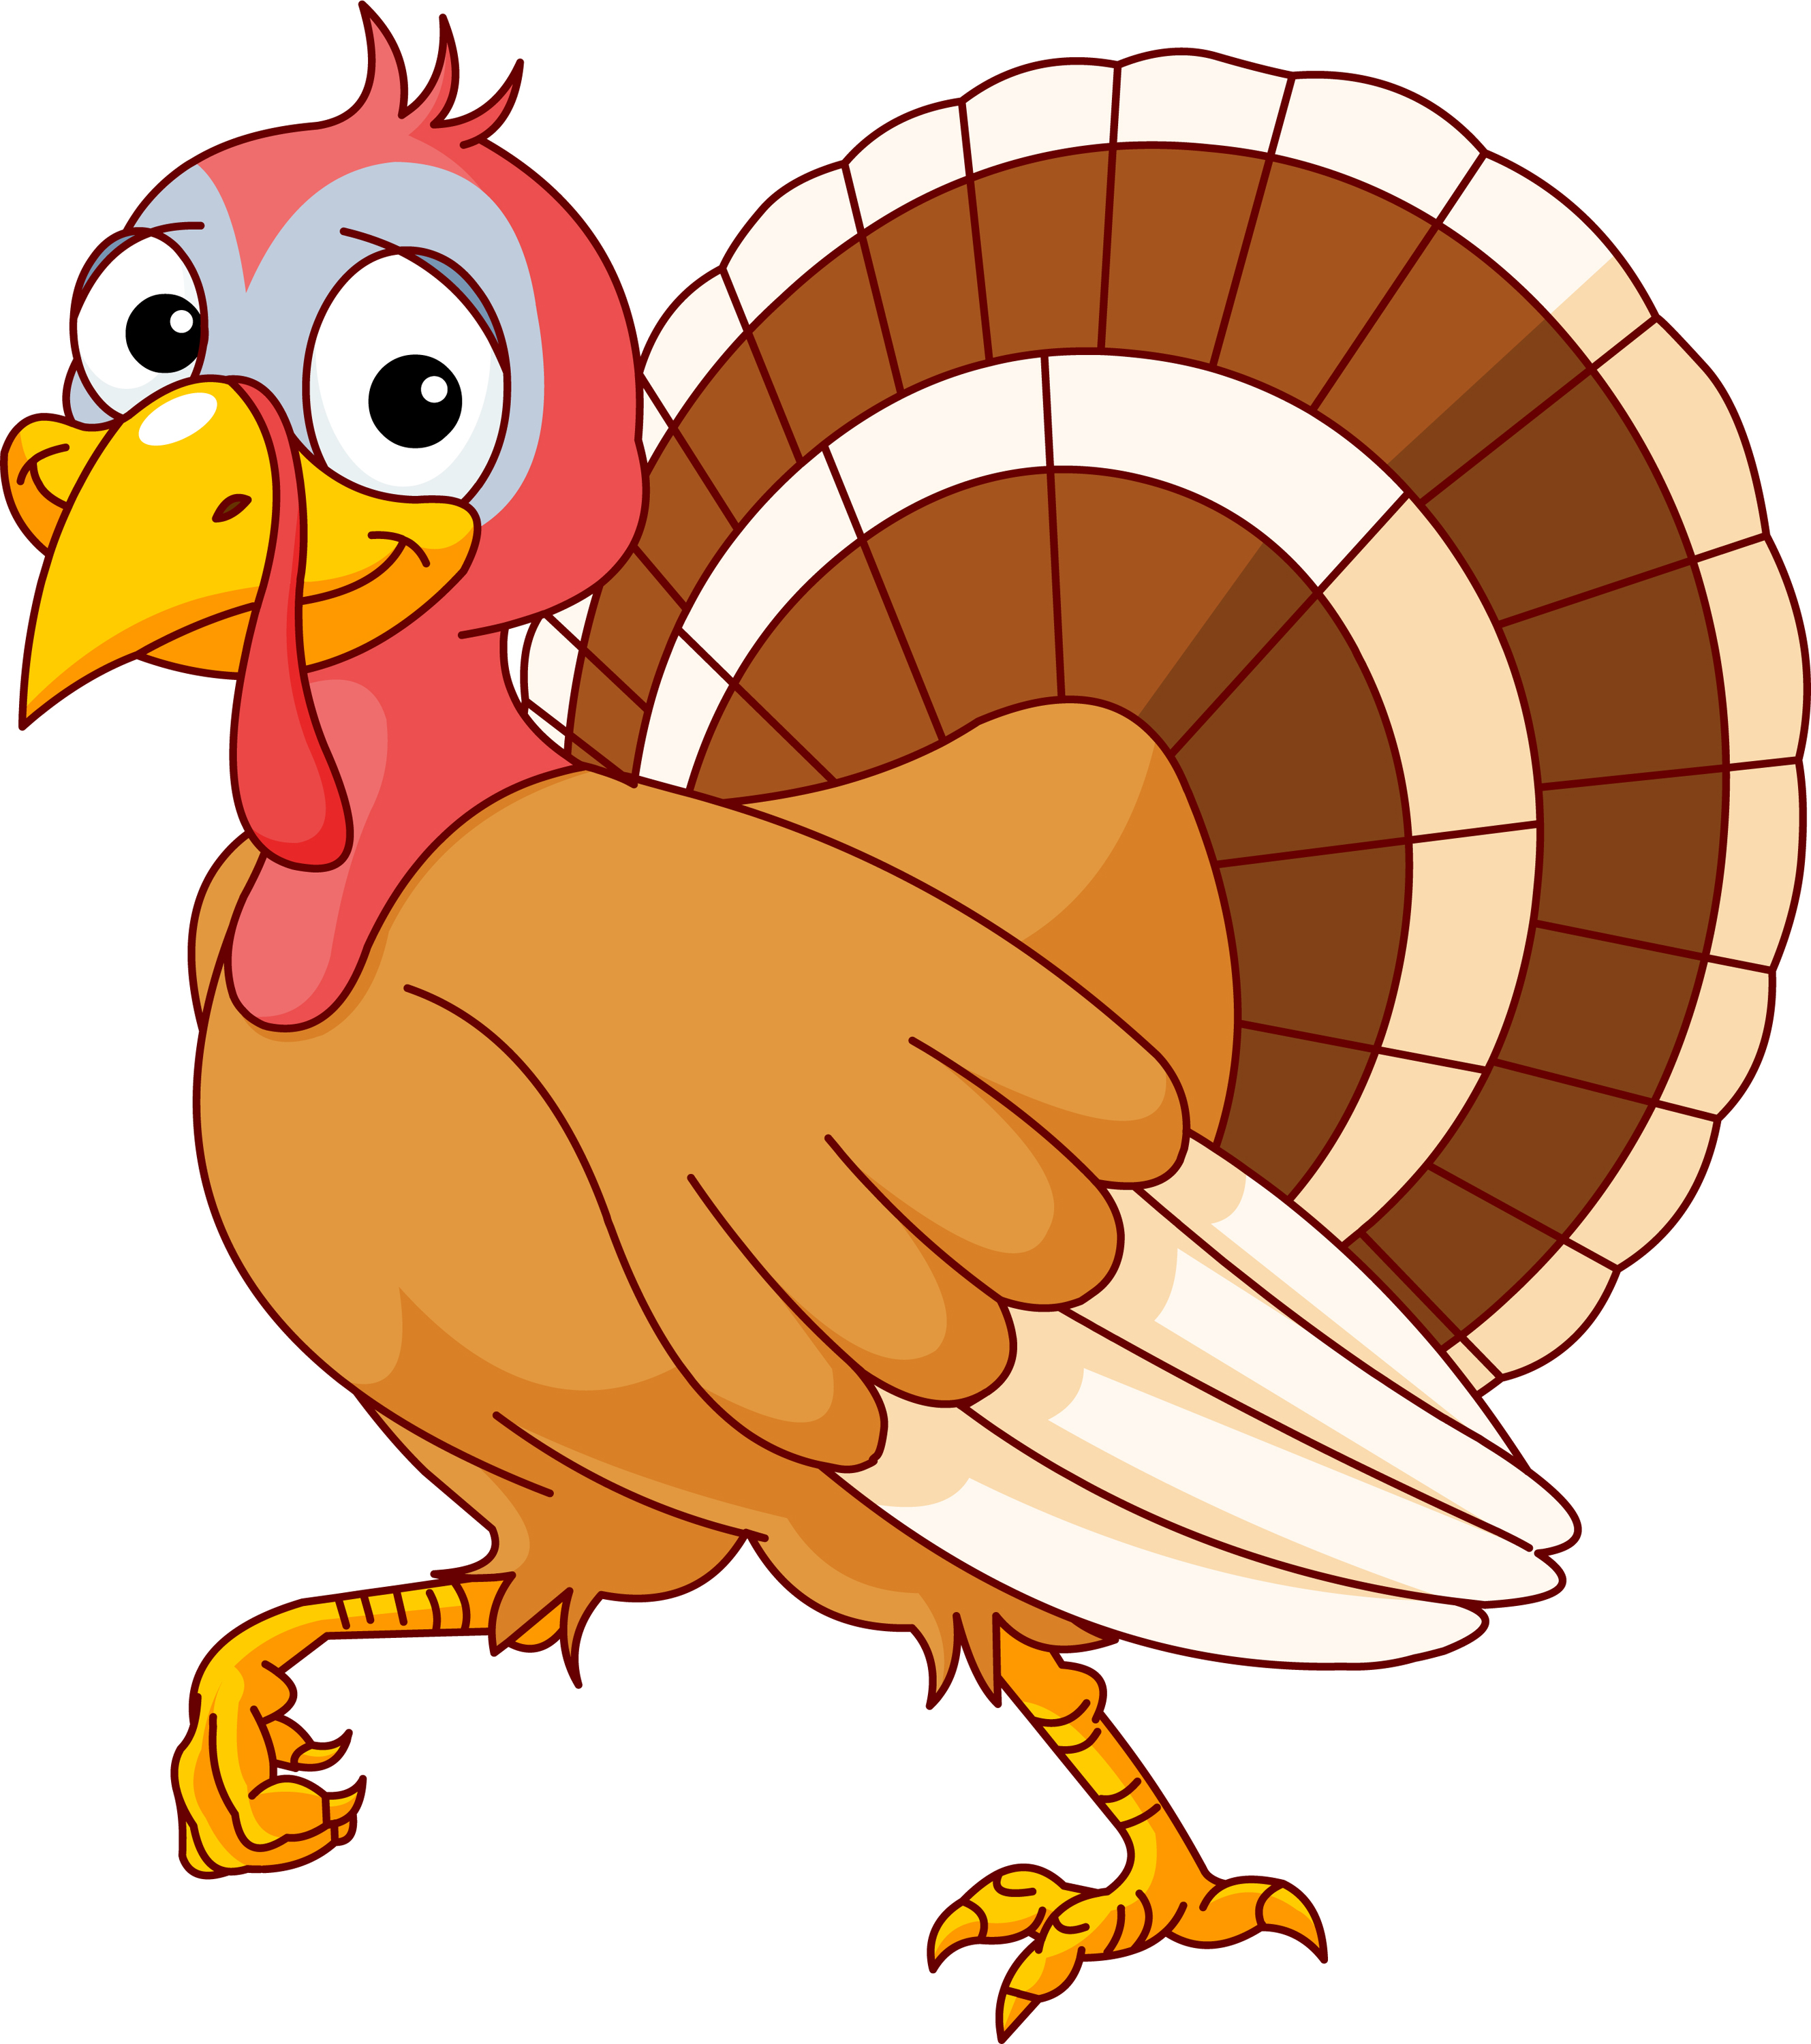 Cute turkey clipart tumundografico